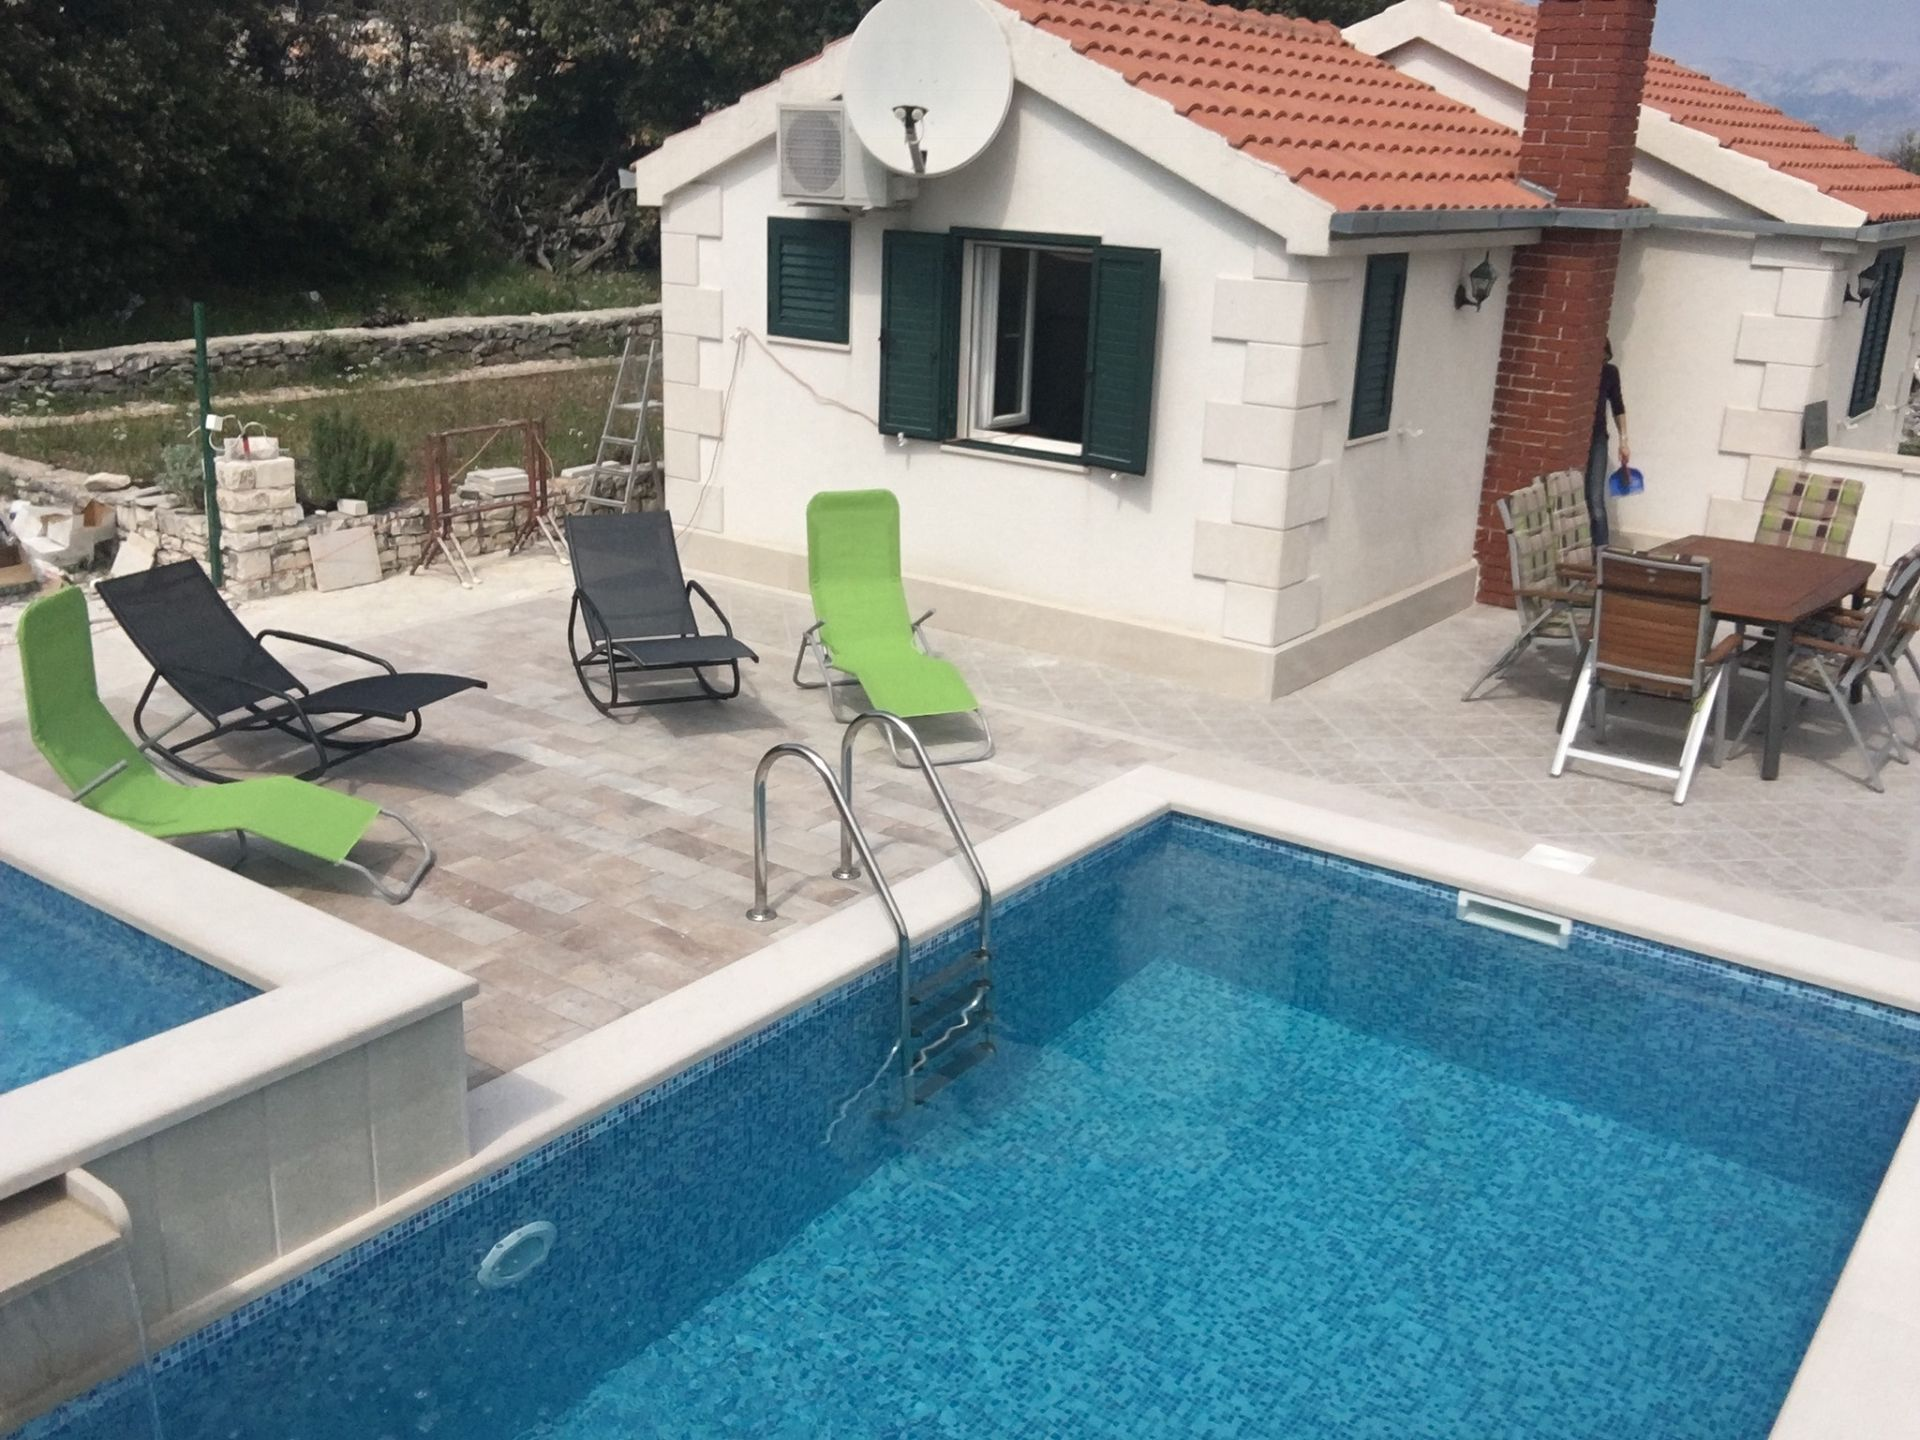 35020 - Skrip - Holiday houses, villas Croatia